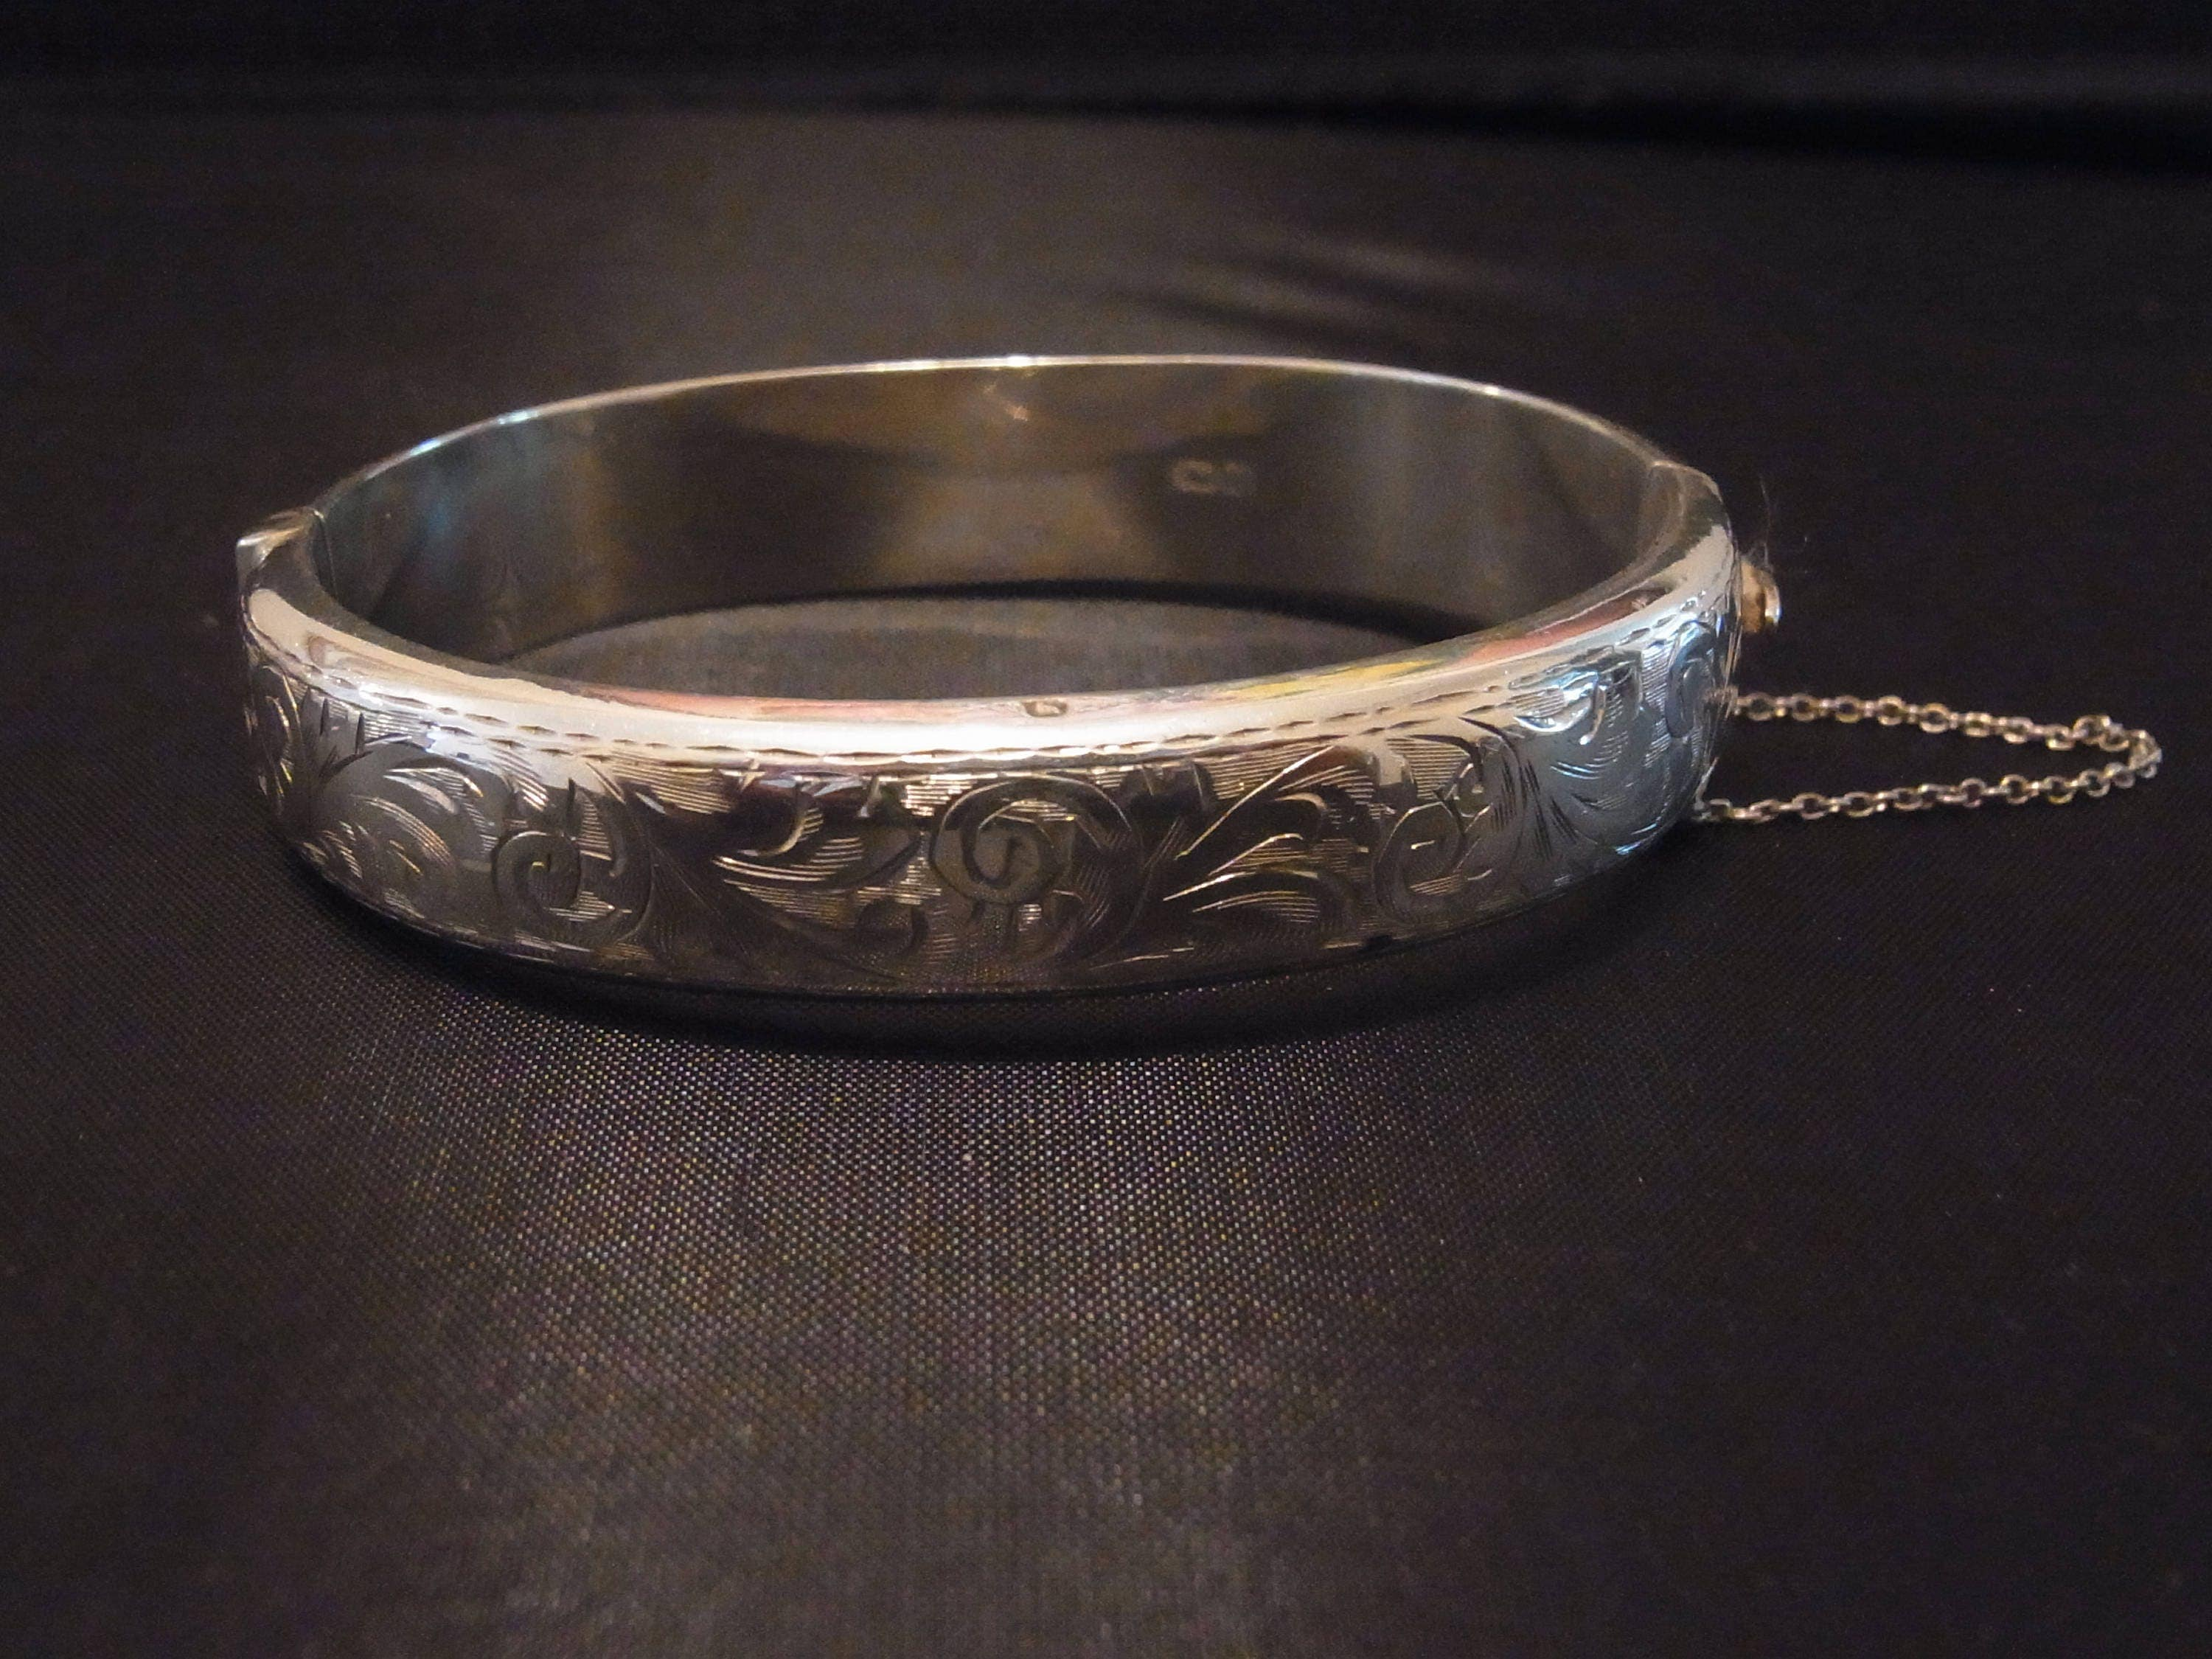 shipping silver sterling overstock balinese plain indonesia bracelet product free jewelry watches handmade bangles flora today bracelets and gold bangle